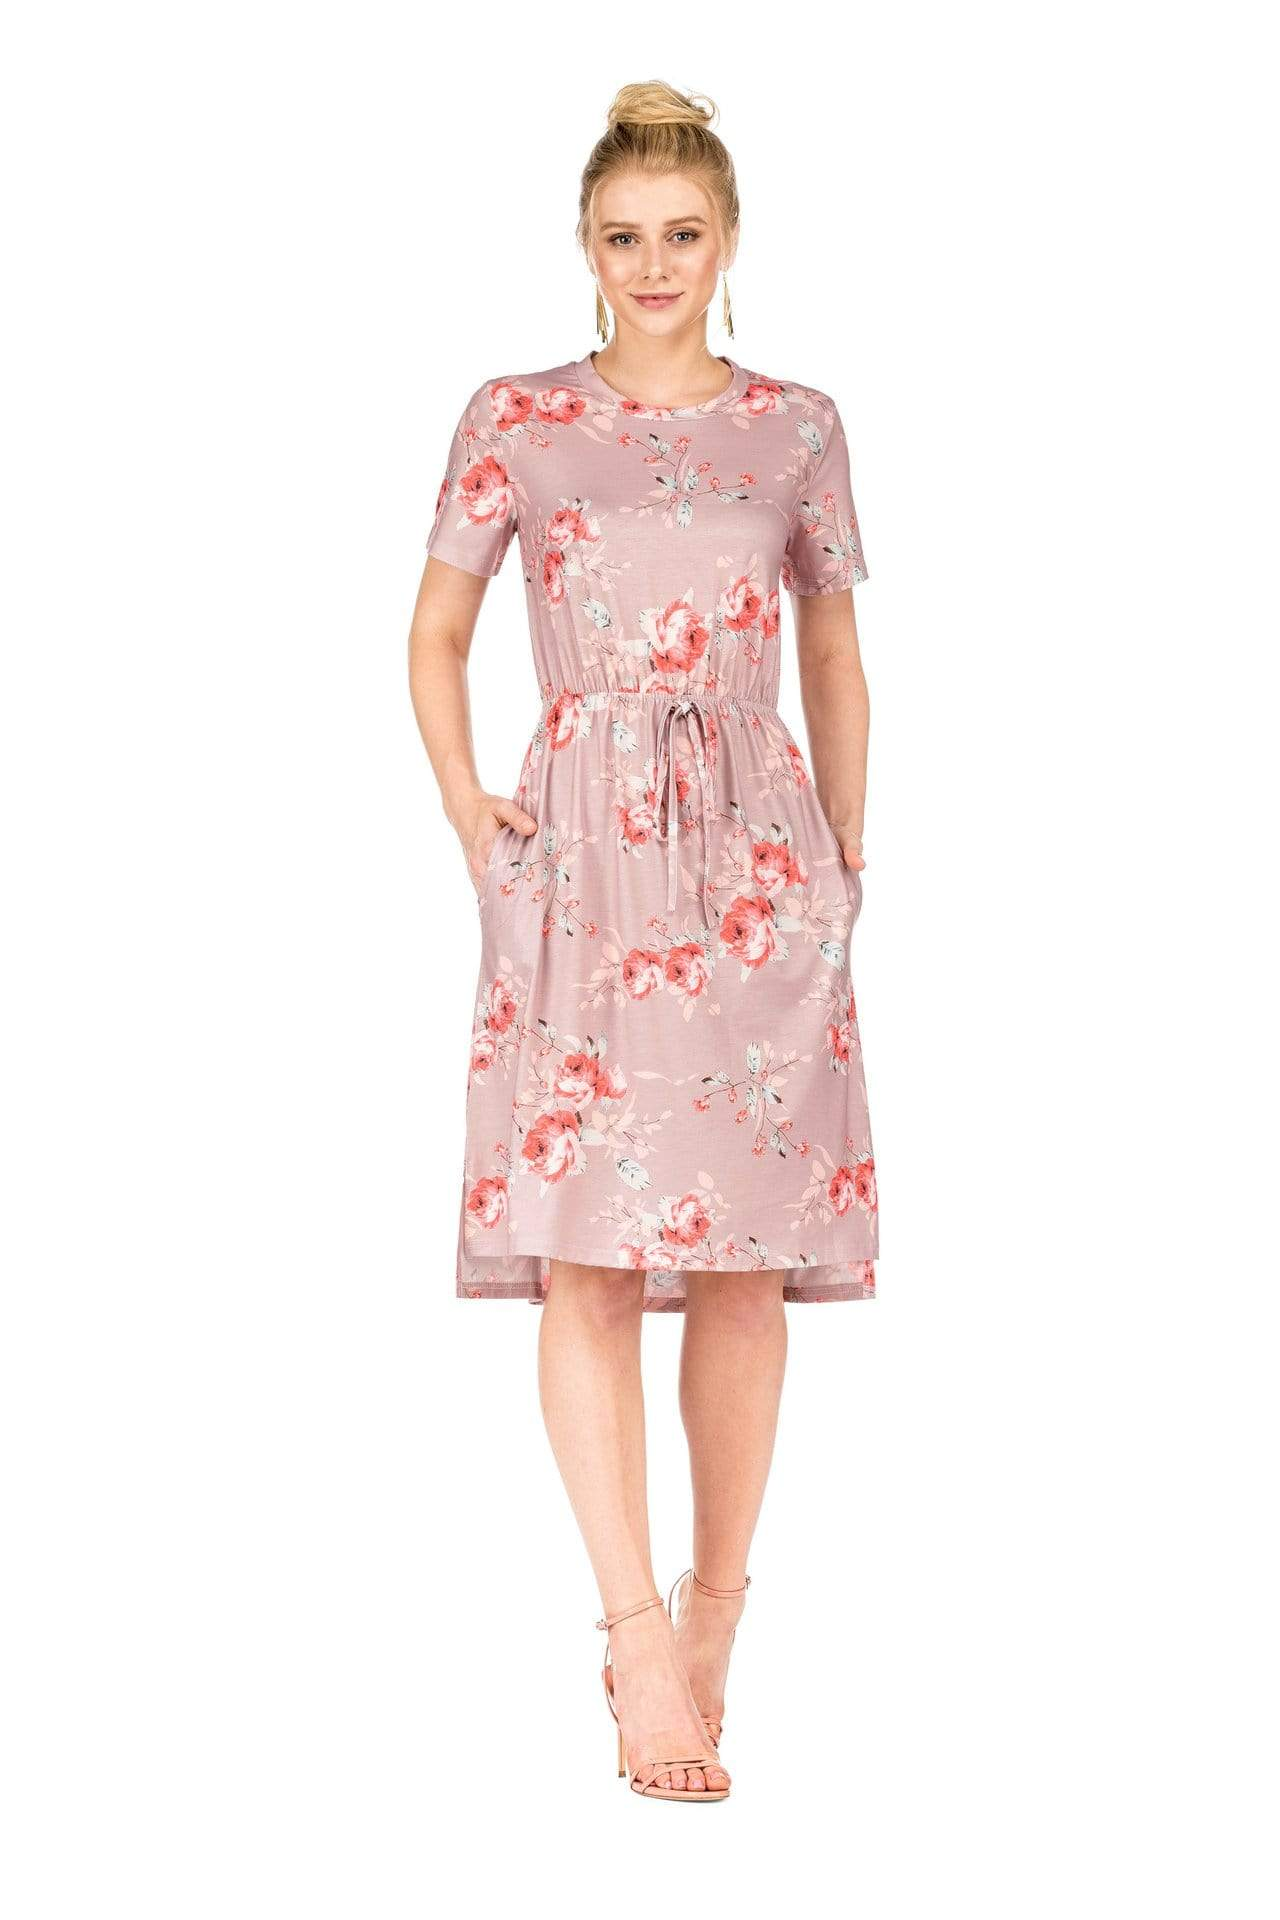 DAILYHAUTE Women's dress LIGHT PINK / S Haute Edition Women's Floral Casual Mid Dress With Pockets